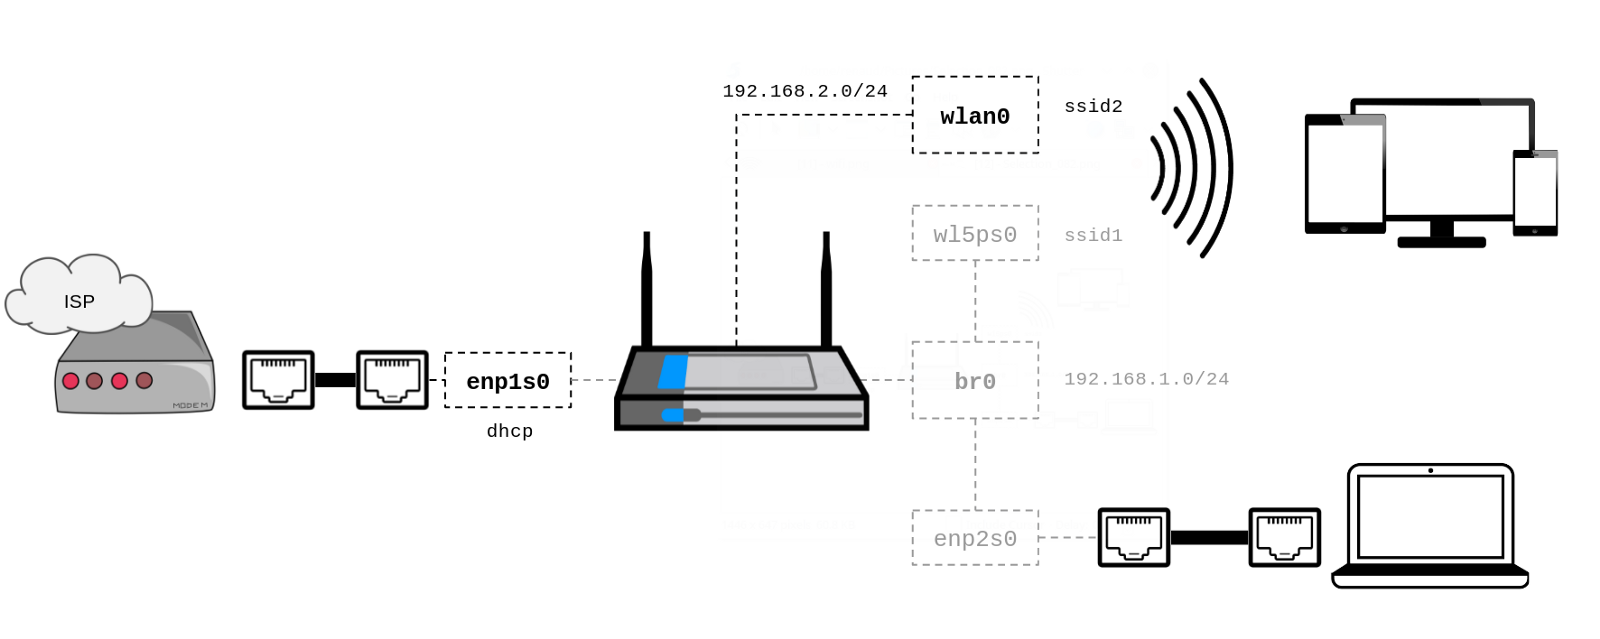 How To Setup A Virtual Ssid With Hostapd Renaud Cerrato Medium Wireless Diagram Updated Of What I Want Achieve Assuming Wlp5s0 Is The Physical Interface Will Run On Wlan0